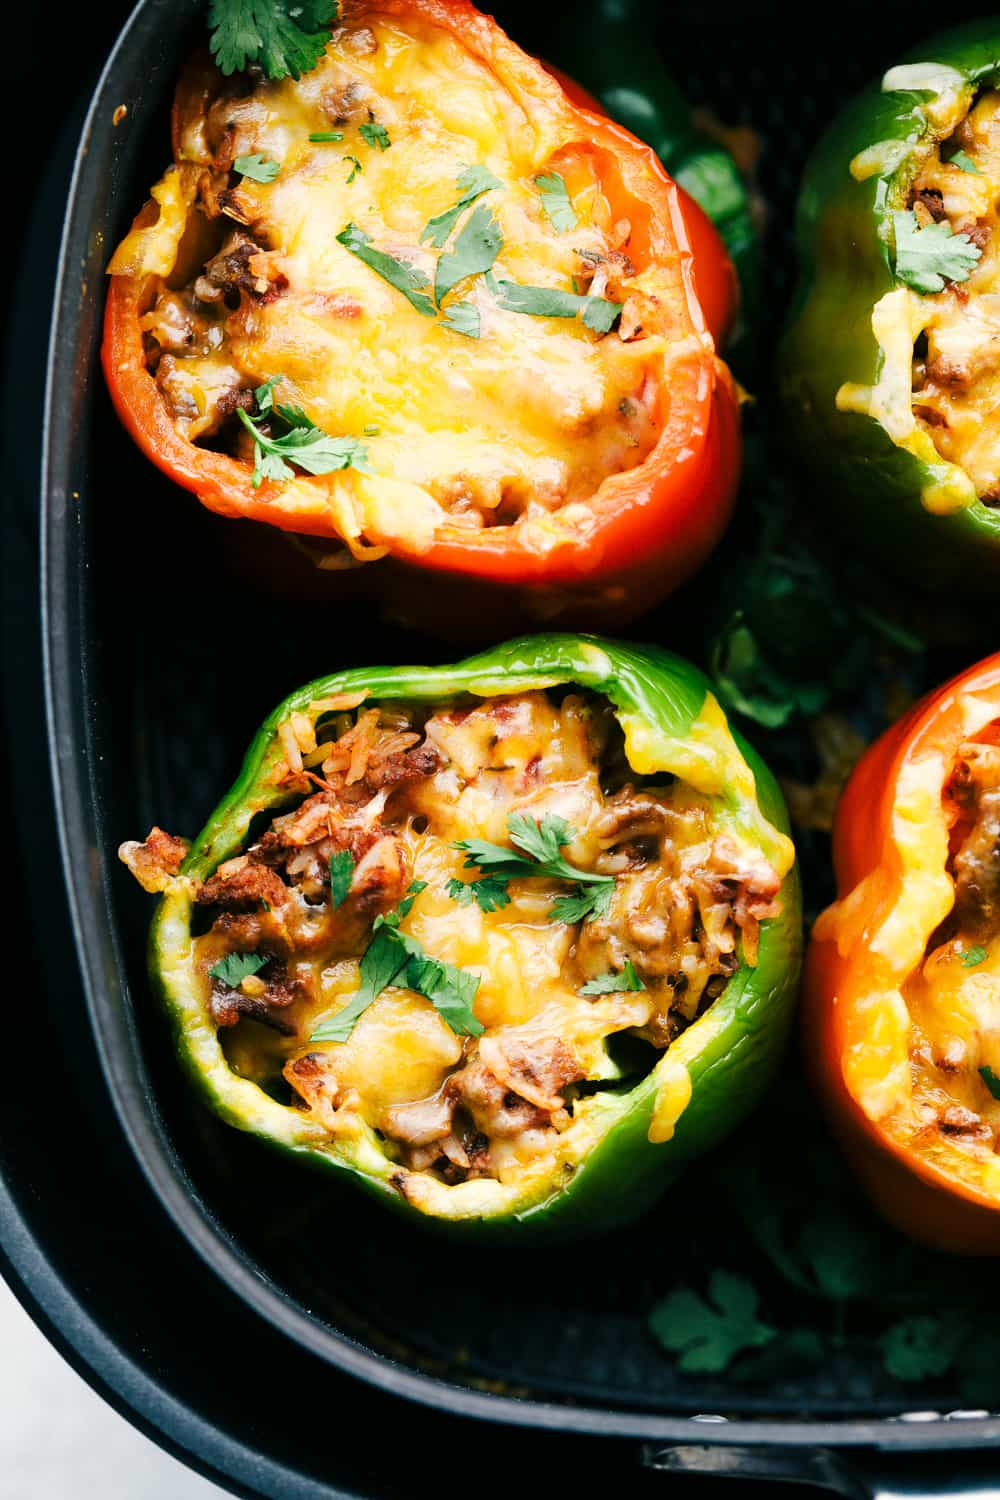 Air Fryer Stuffed peppers with cheesy rice filling.